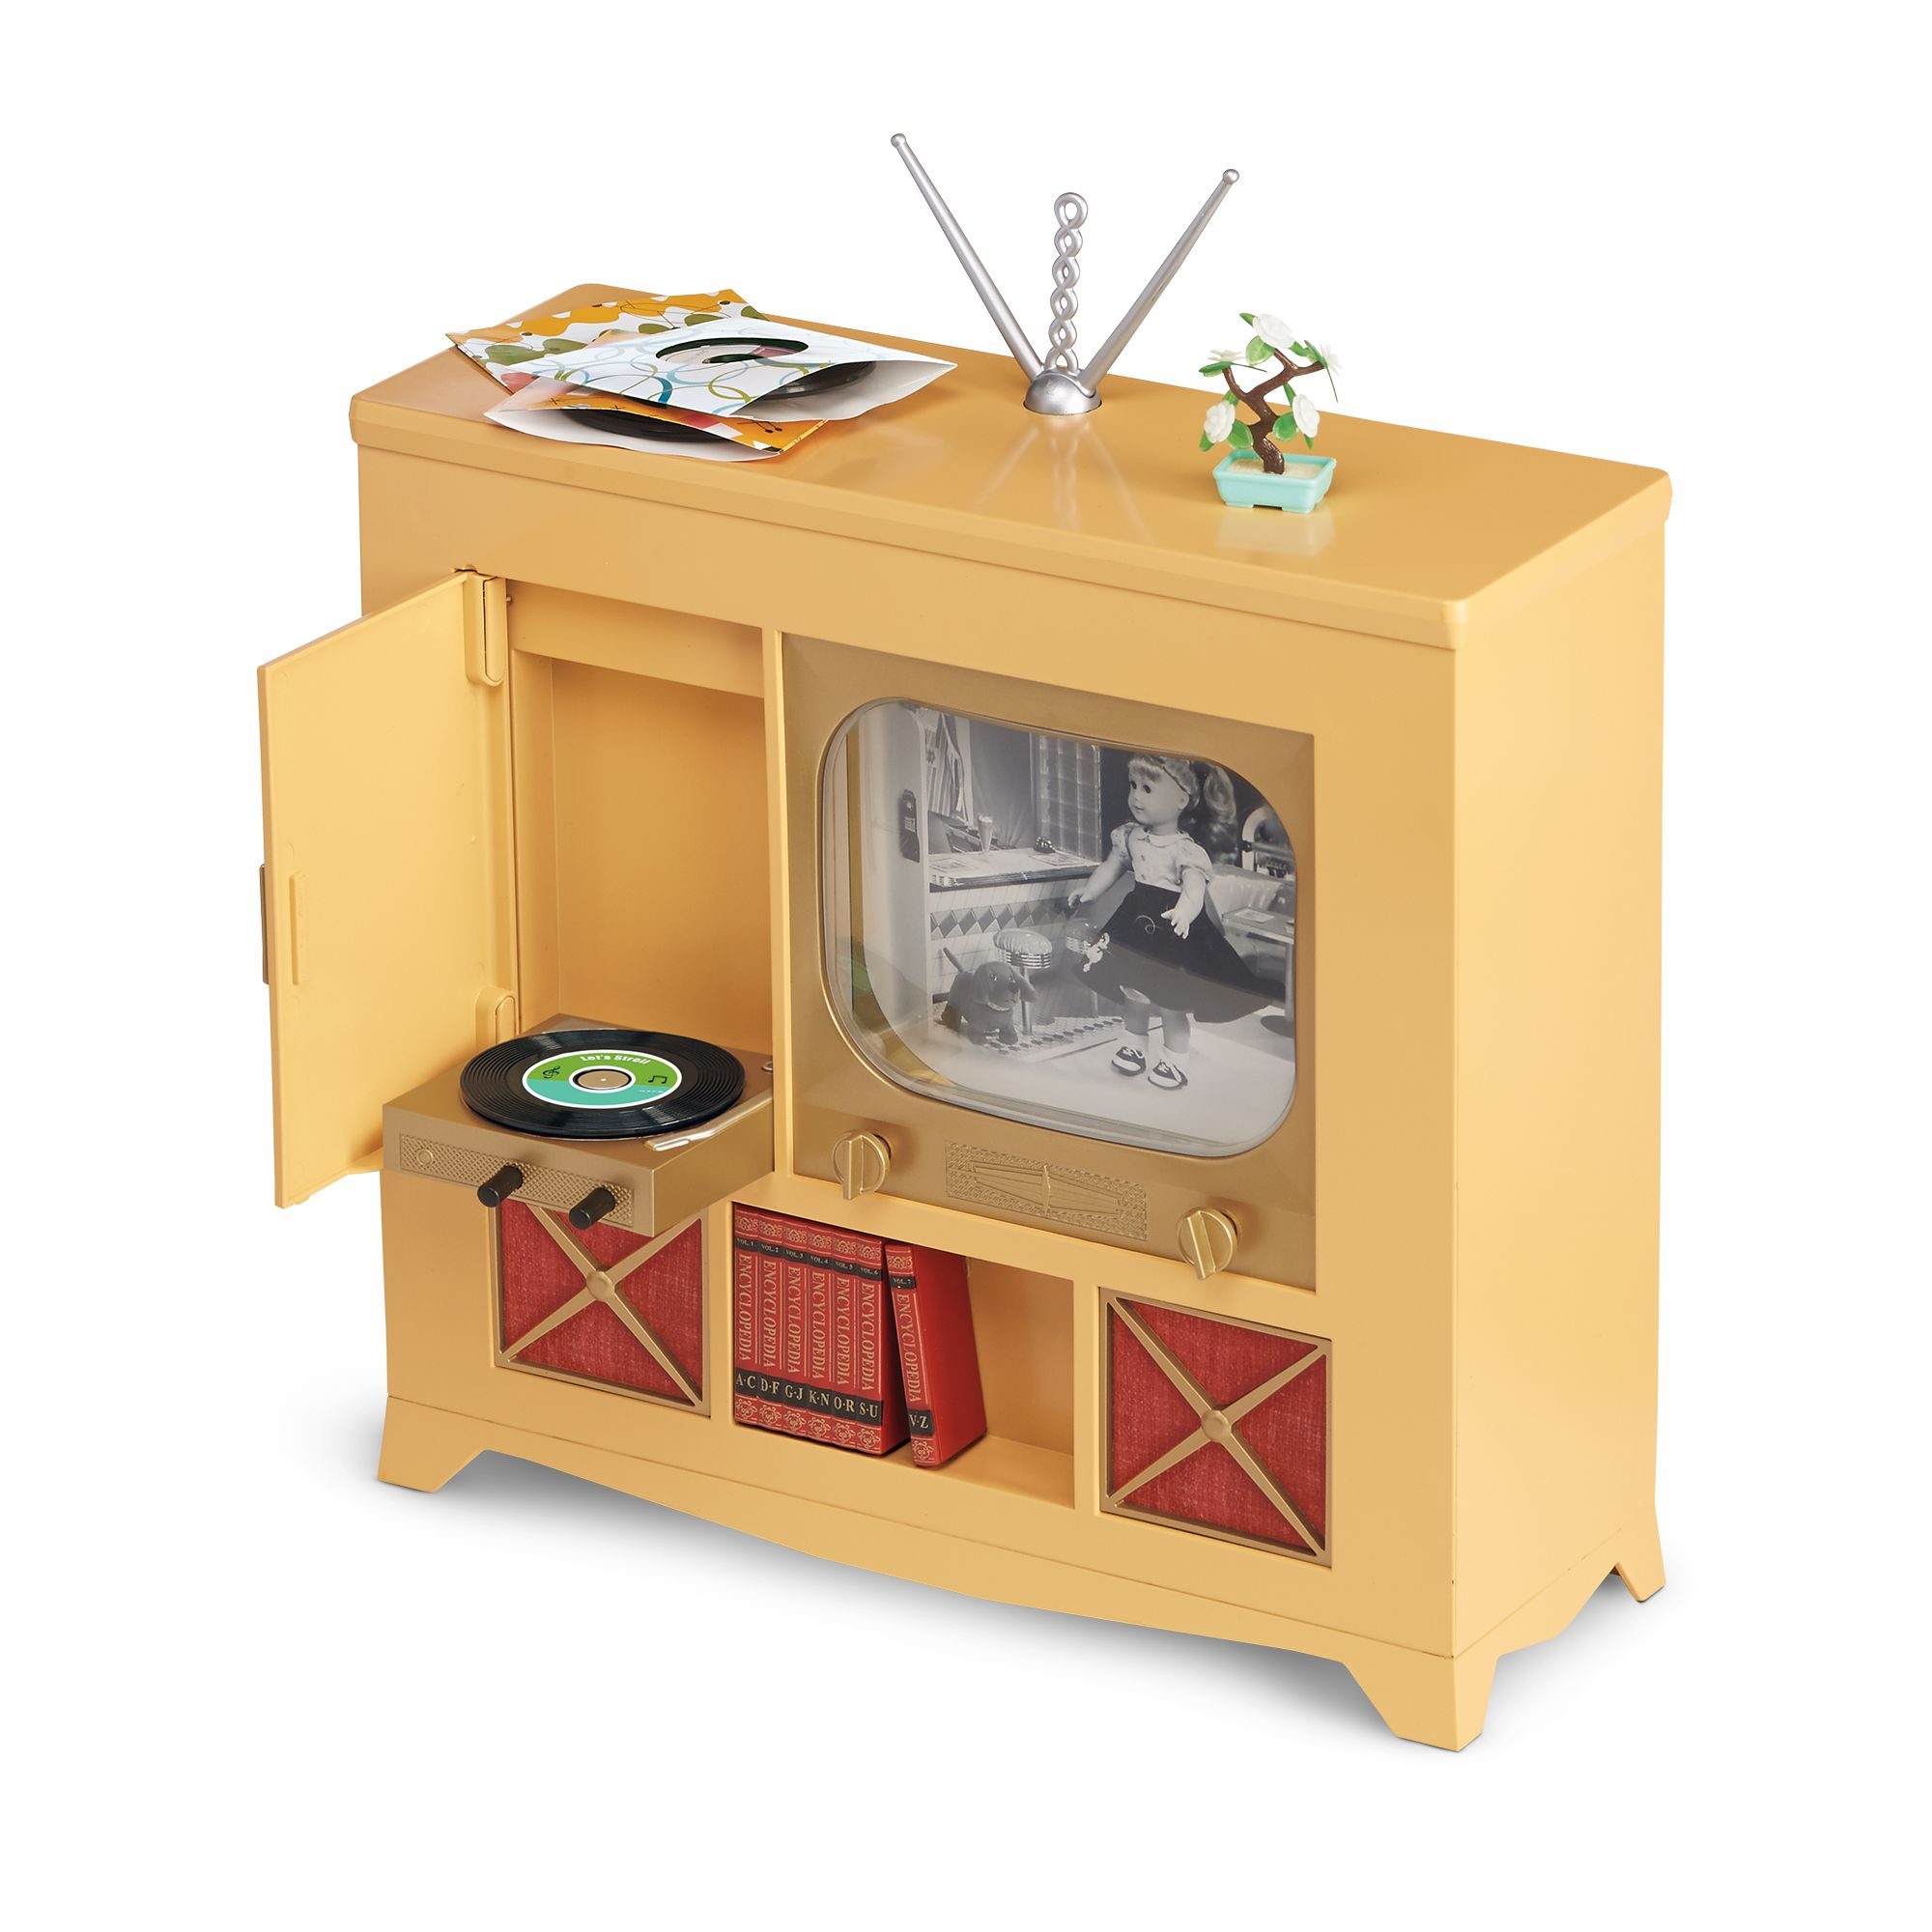 Maryellens Television Console American Girl Wiki FANDOM powered